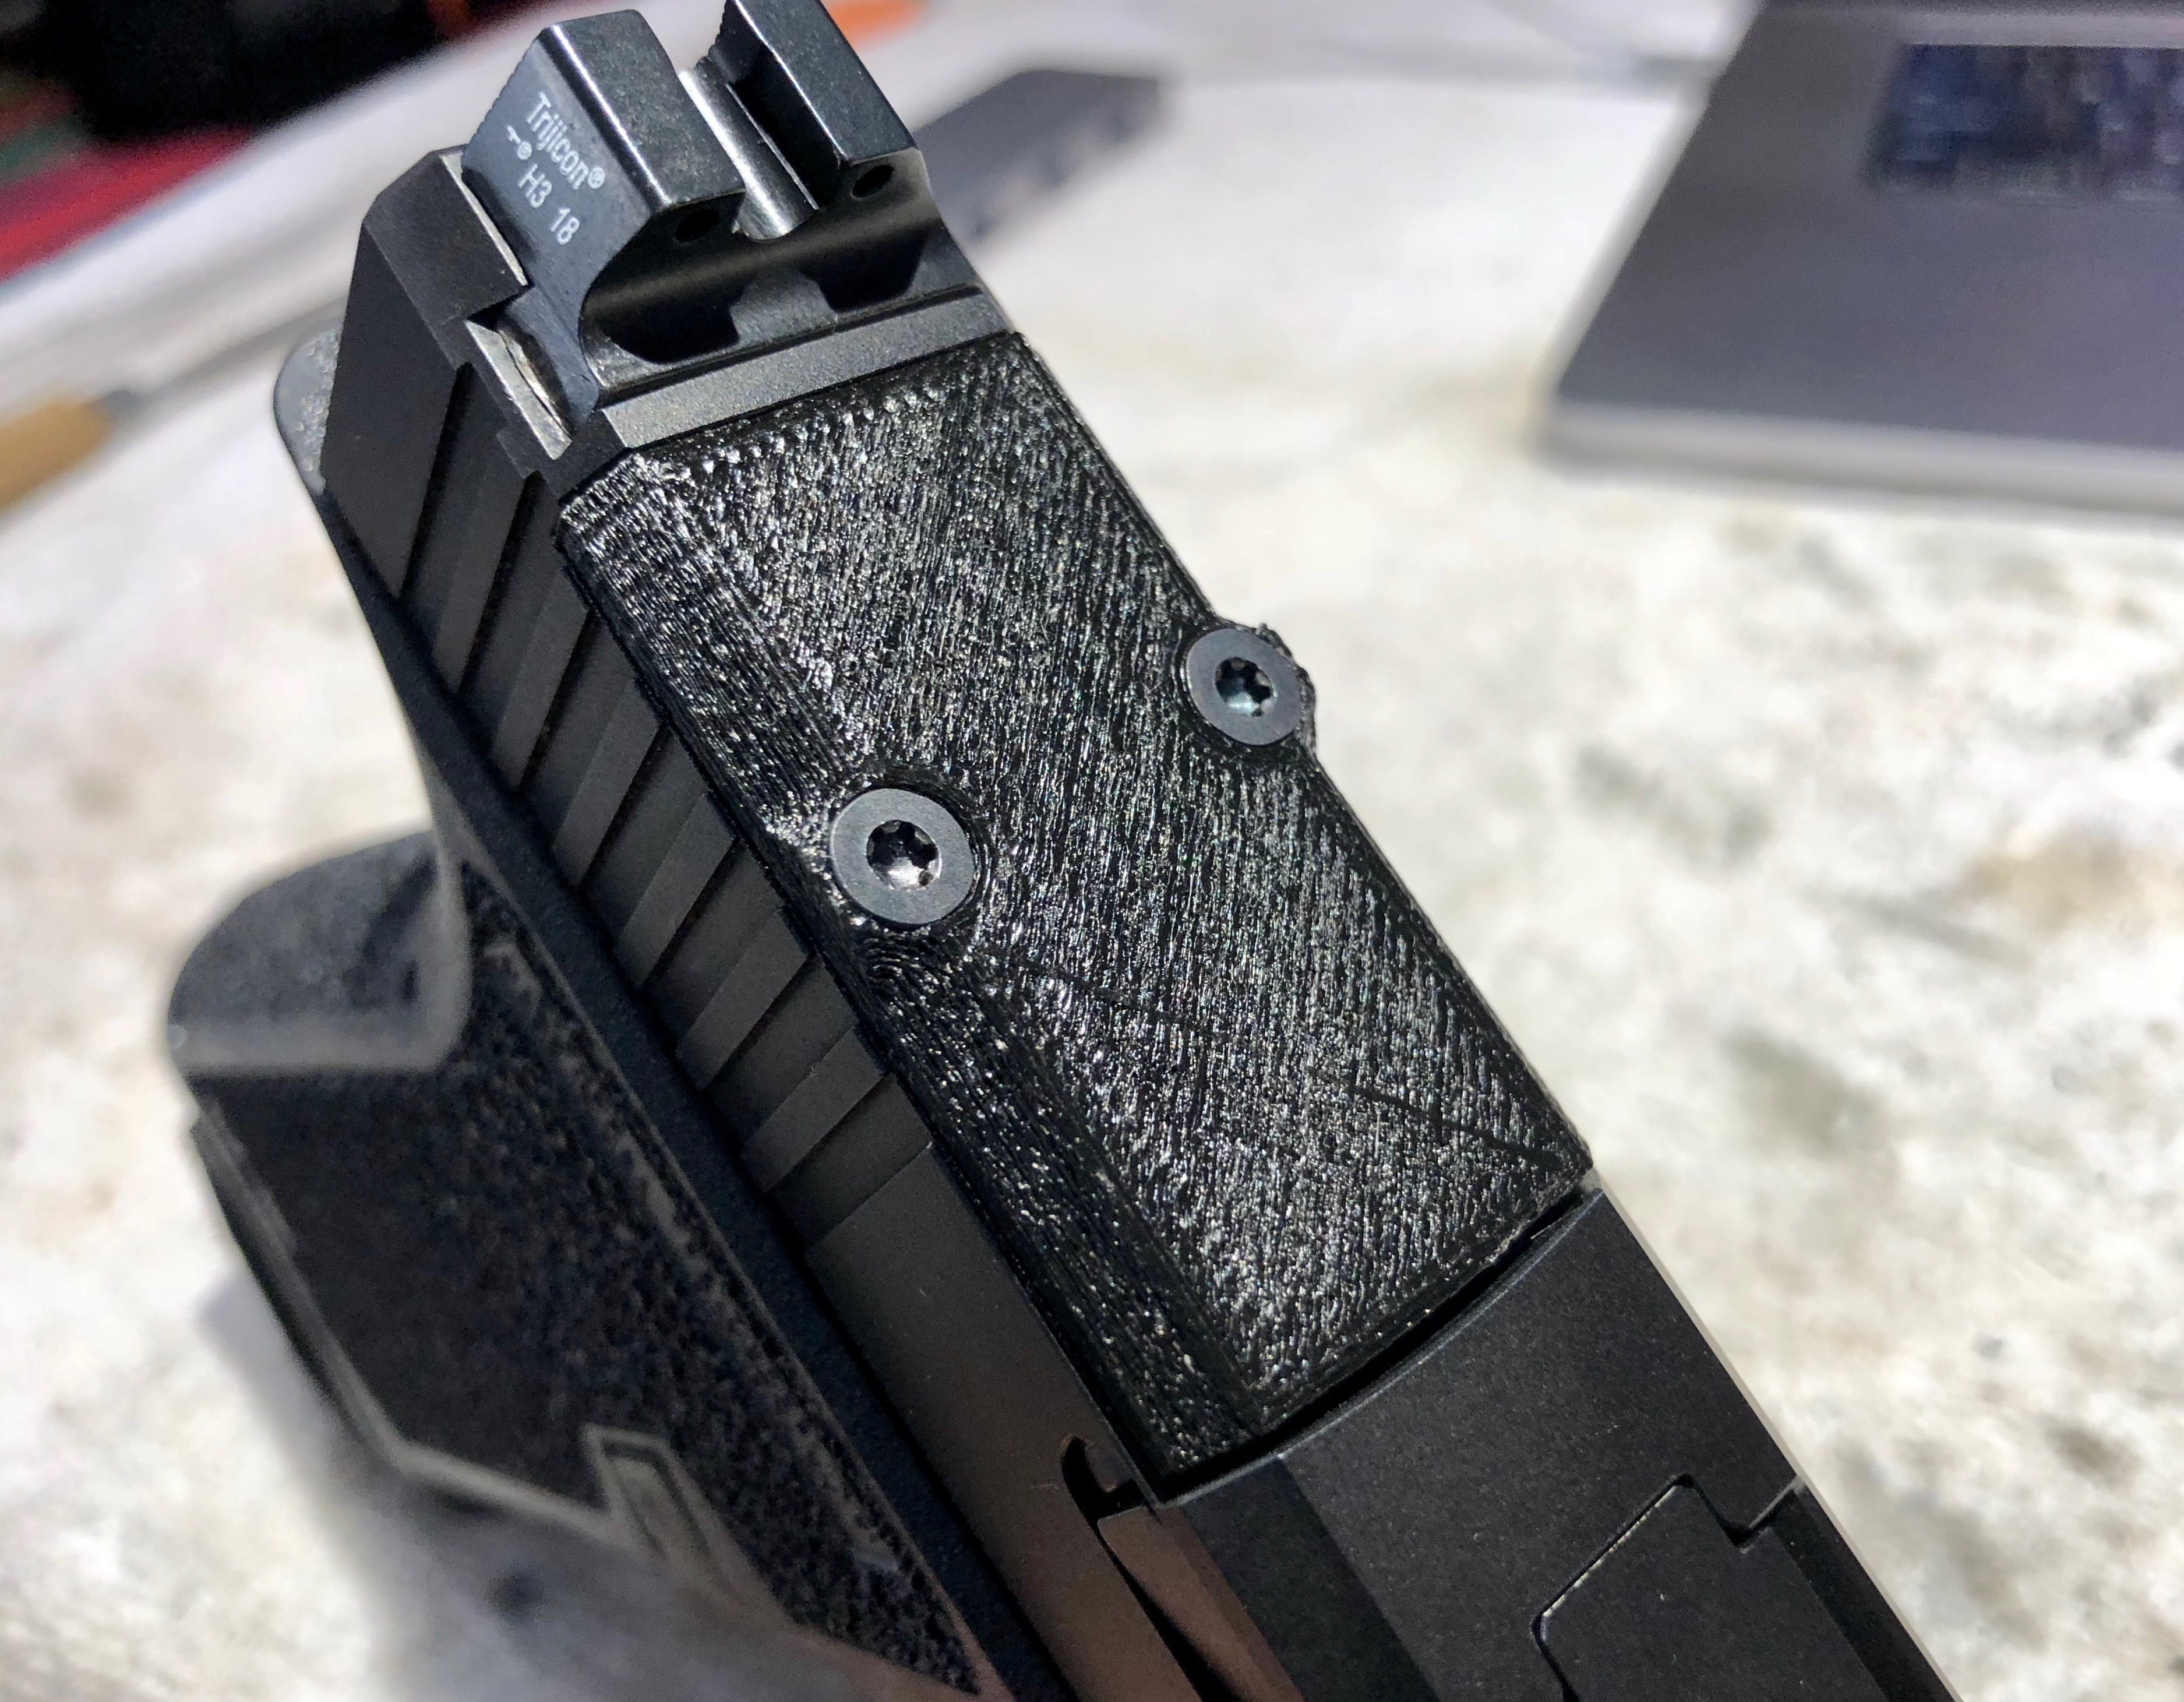 Glock RMR Slide Cover Plate by stmayo11 - Thingiverse